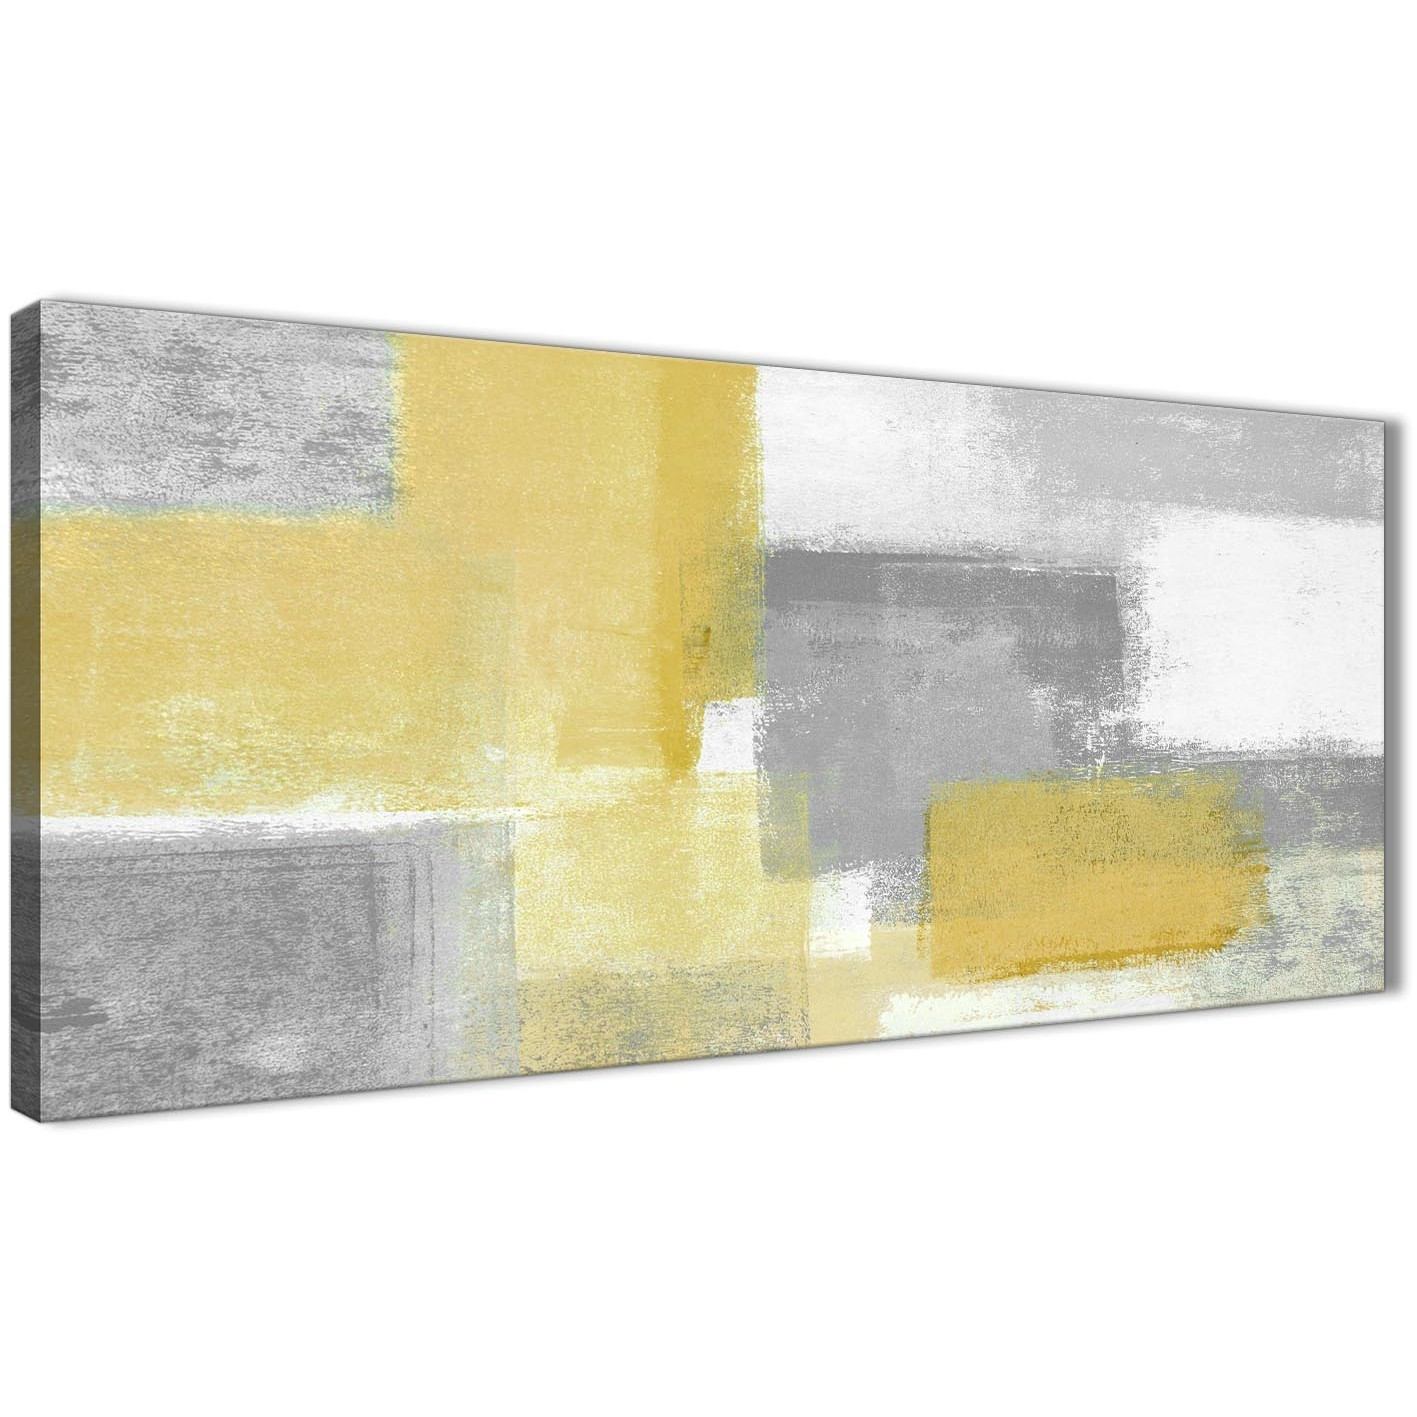 Mustard Yellow Grey Living Room Canvas Wall Art Accessories Regarding Most Recently Released Yellow And Grey Abstract Wall Art (View 5 of 20)